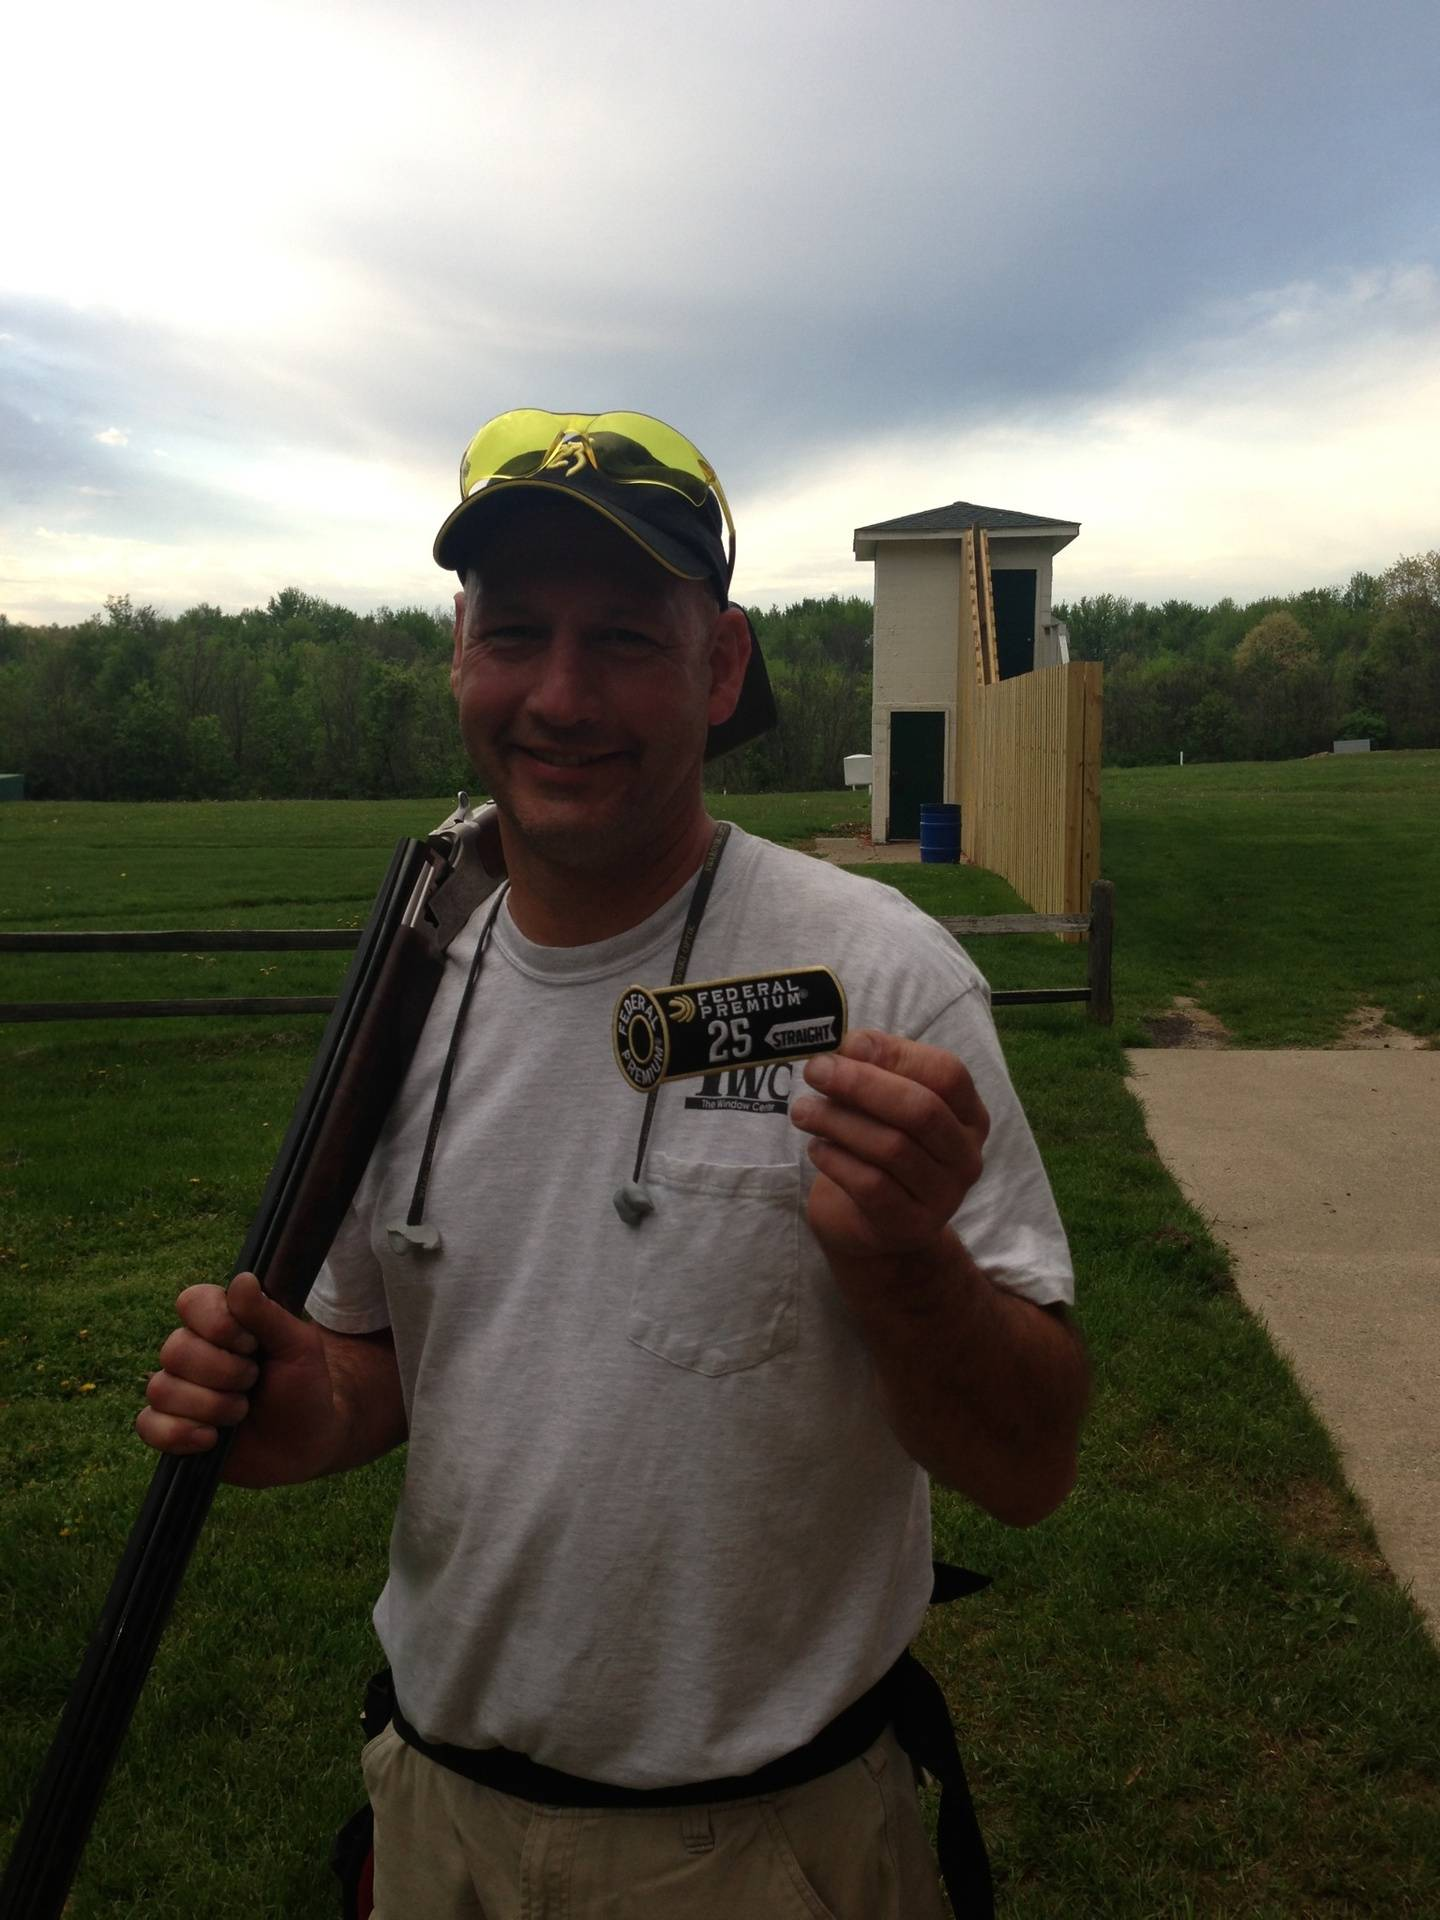 Congrats to Chris Lorenzo on 25 straight with a 28ga.